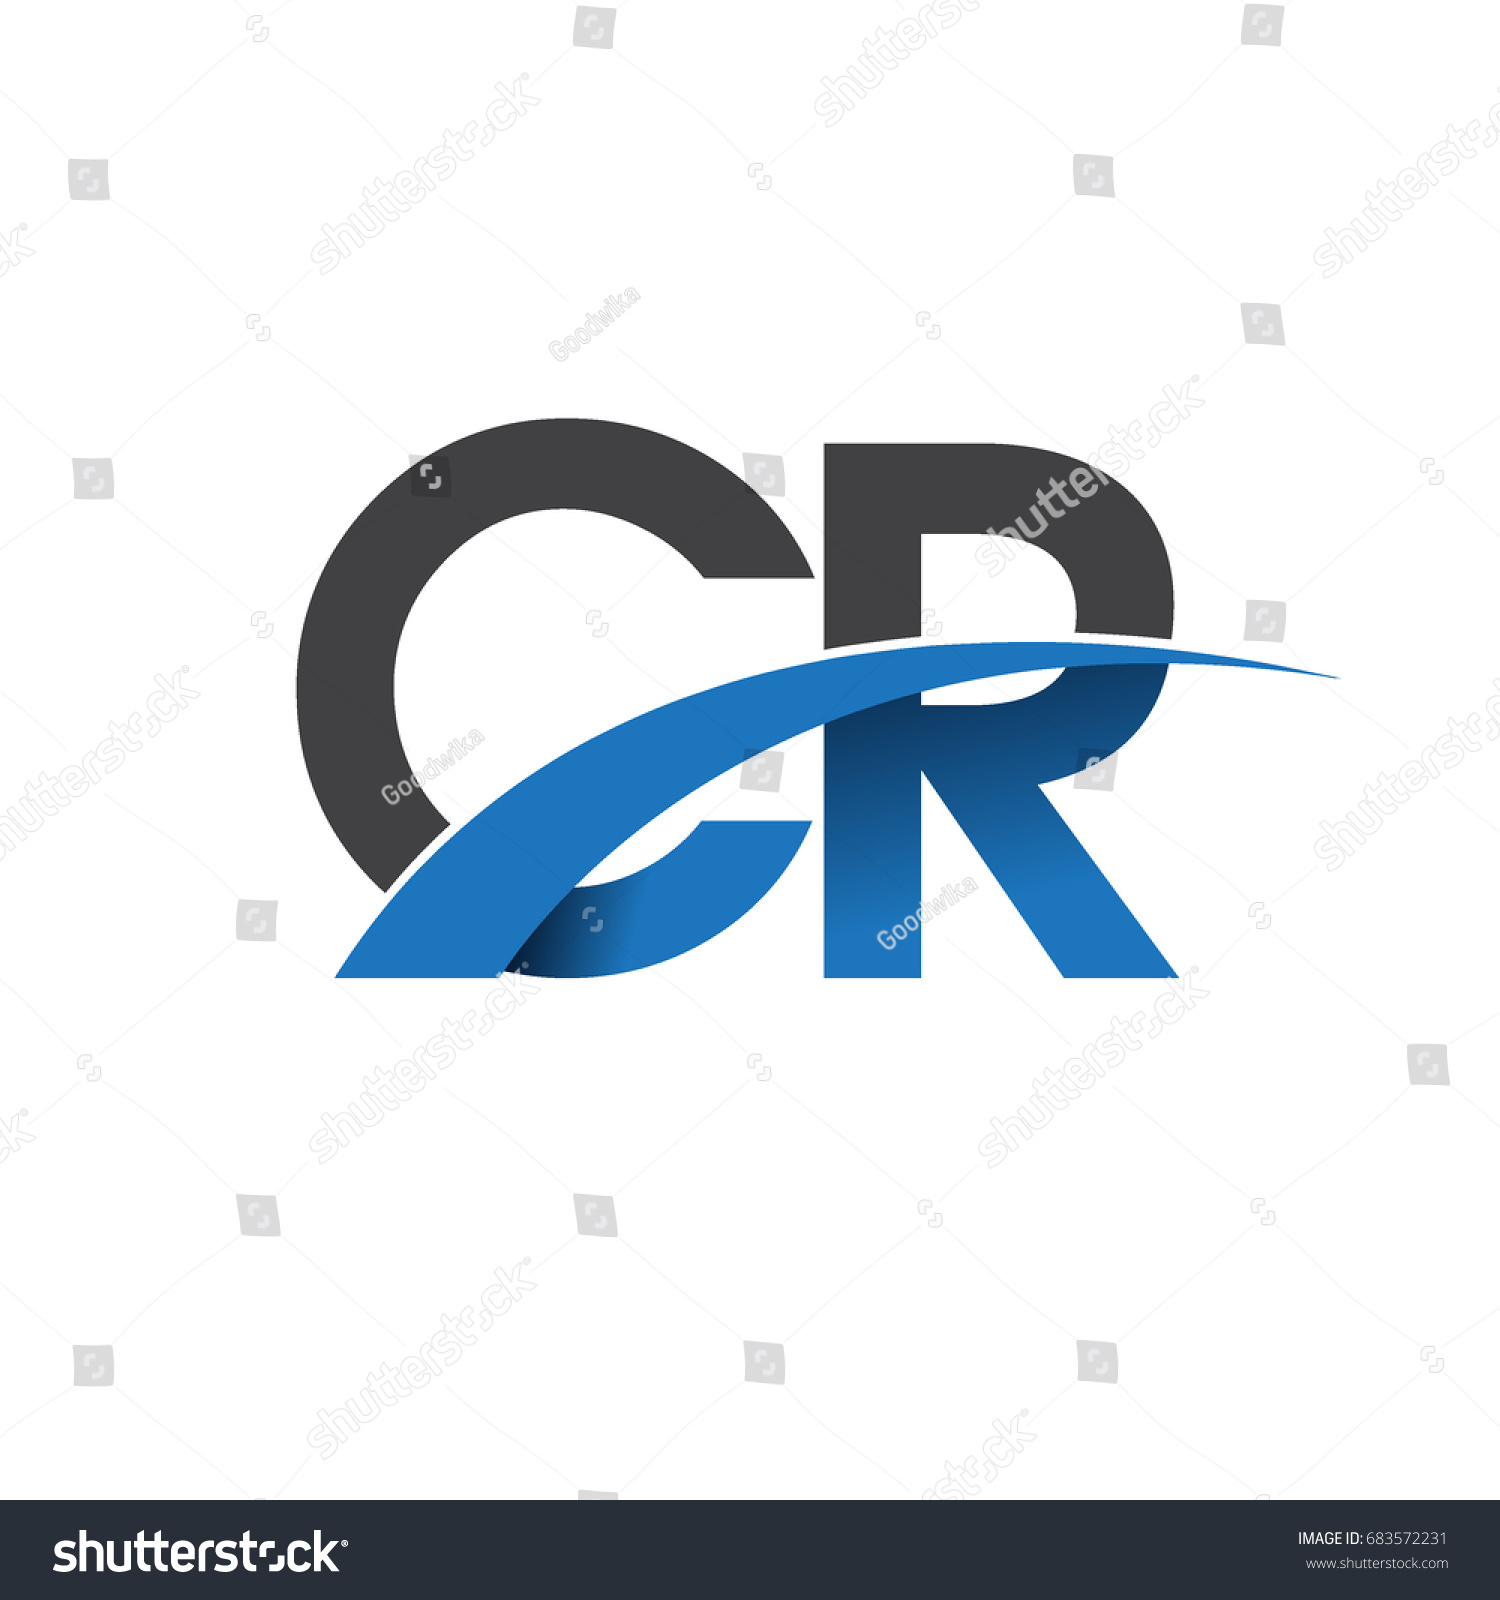 Initial letter cr logotype company name stock vector 683572231 initial letter cr logotype company name colored blue and grey swoosh design vector logo for buycottarizona